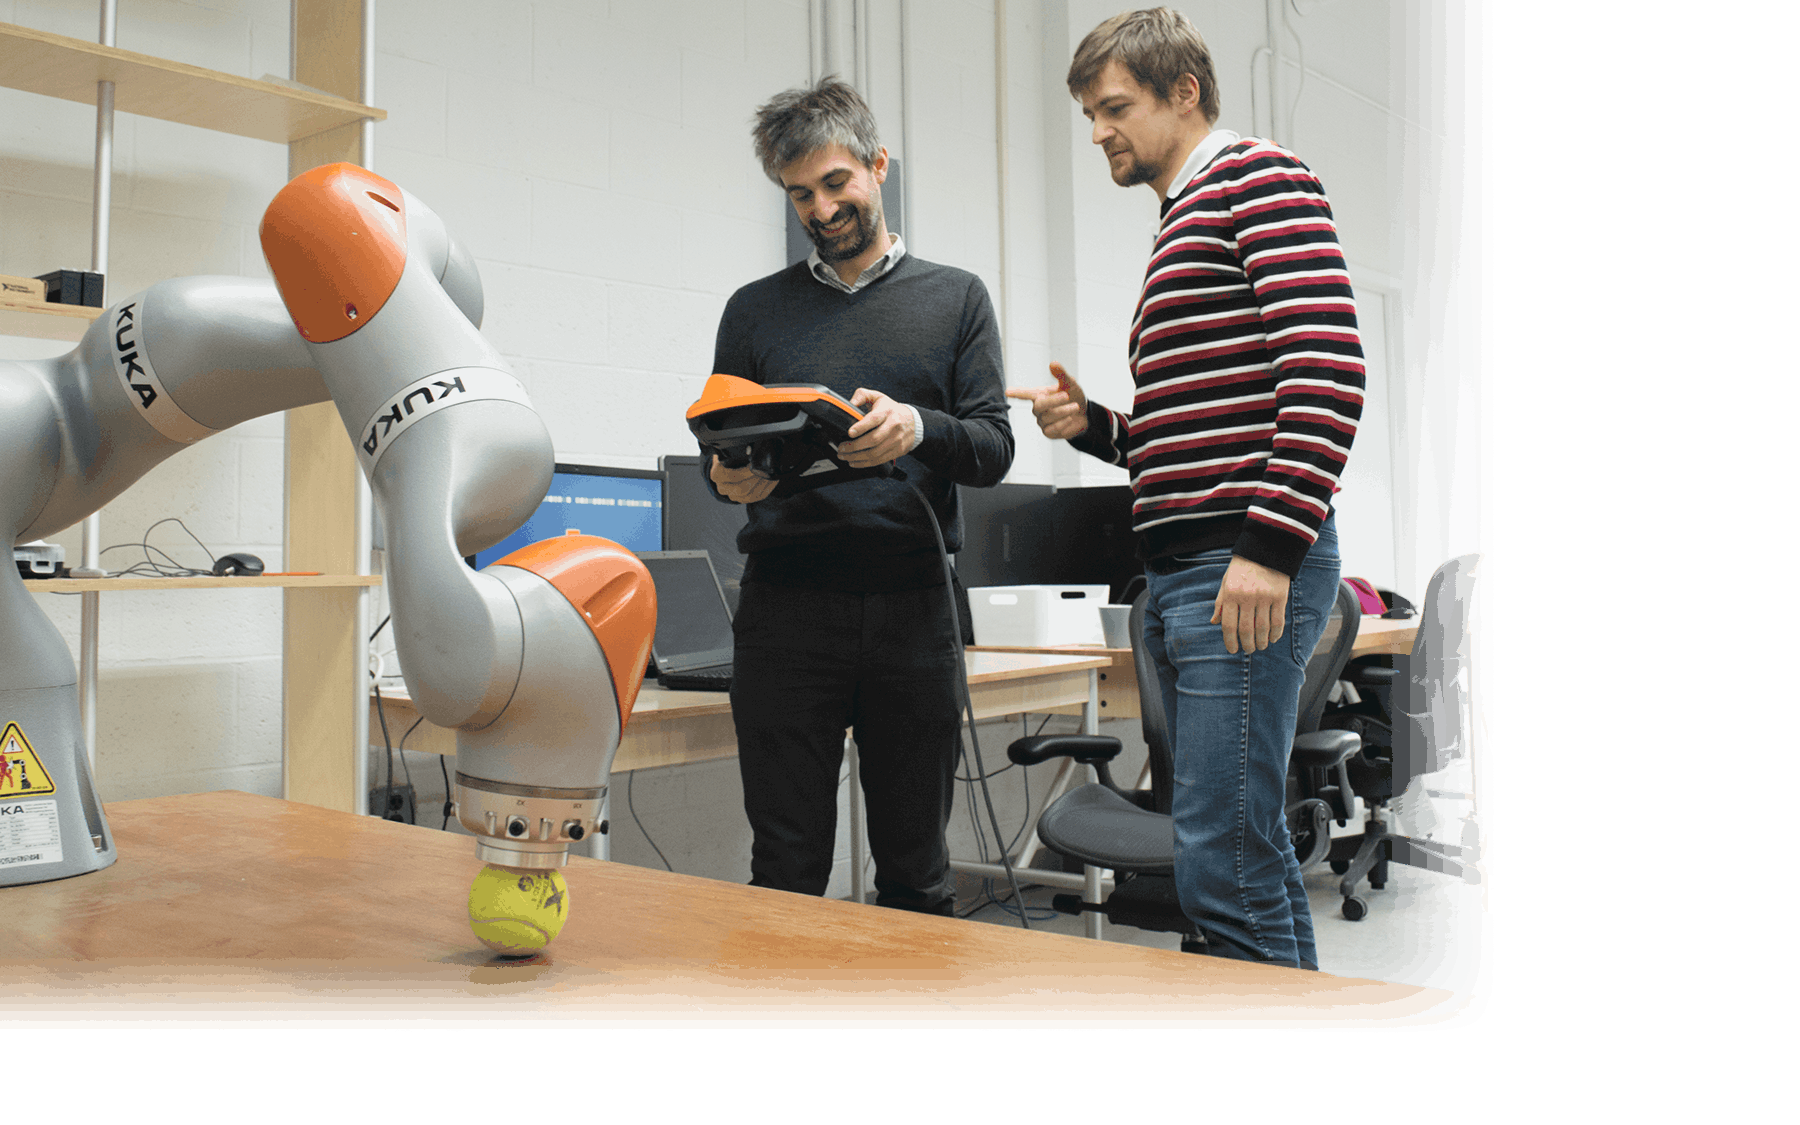 Associate Professor Ludovic Righetti and his team at NYU WIRELESS investigate novel control and perception algorithms for robotic drones, legged robots and manipulators and study how 5G & 6G wireless communication can be leveraged to improve robot autonomy.